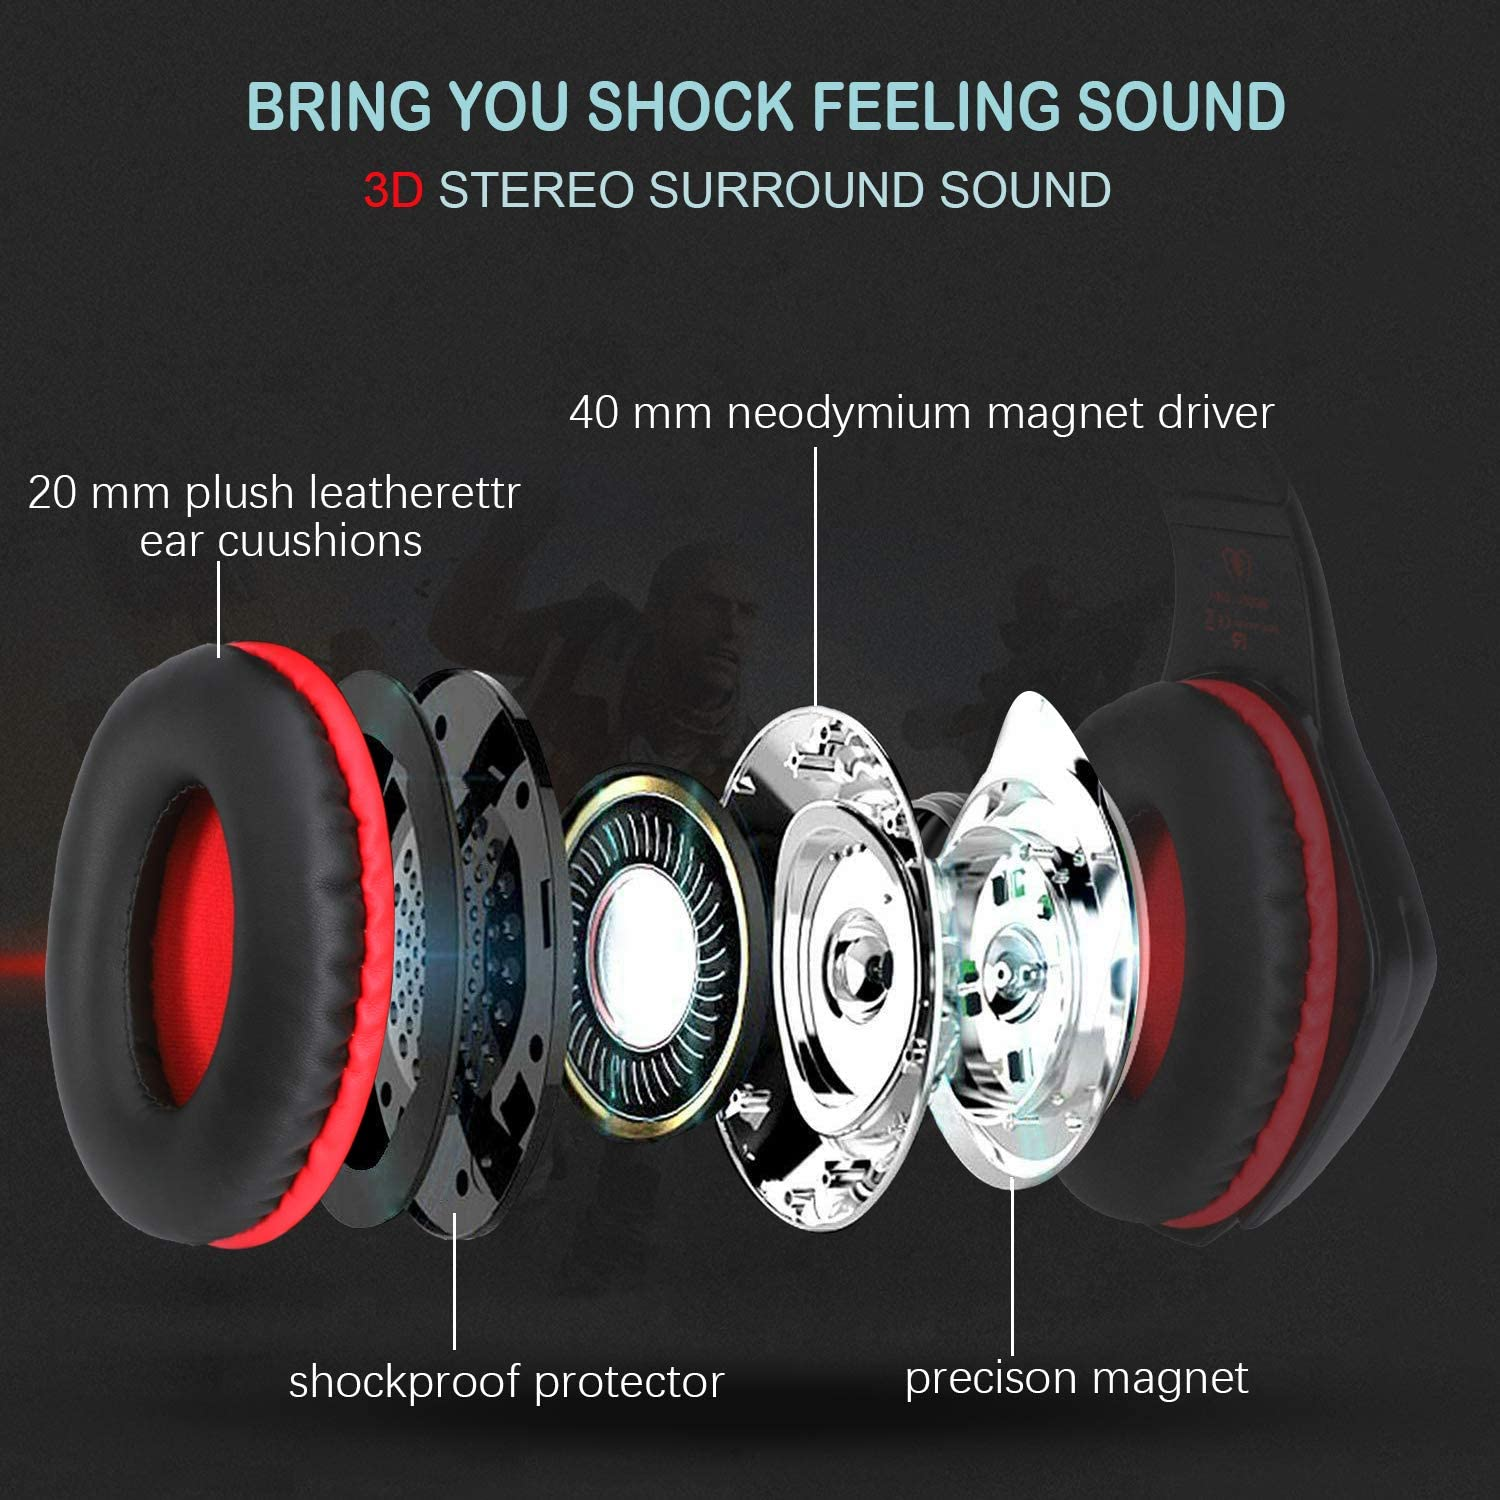 Wired Bass Stereo PC Headphone with Crystal 3D Gaming Sound for PS4 Switch Gamers Xbox One Black and Red MUCH Over-Ear Gaming Headphset with Noise Canceling Mic